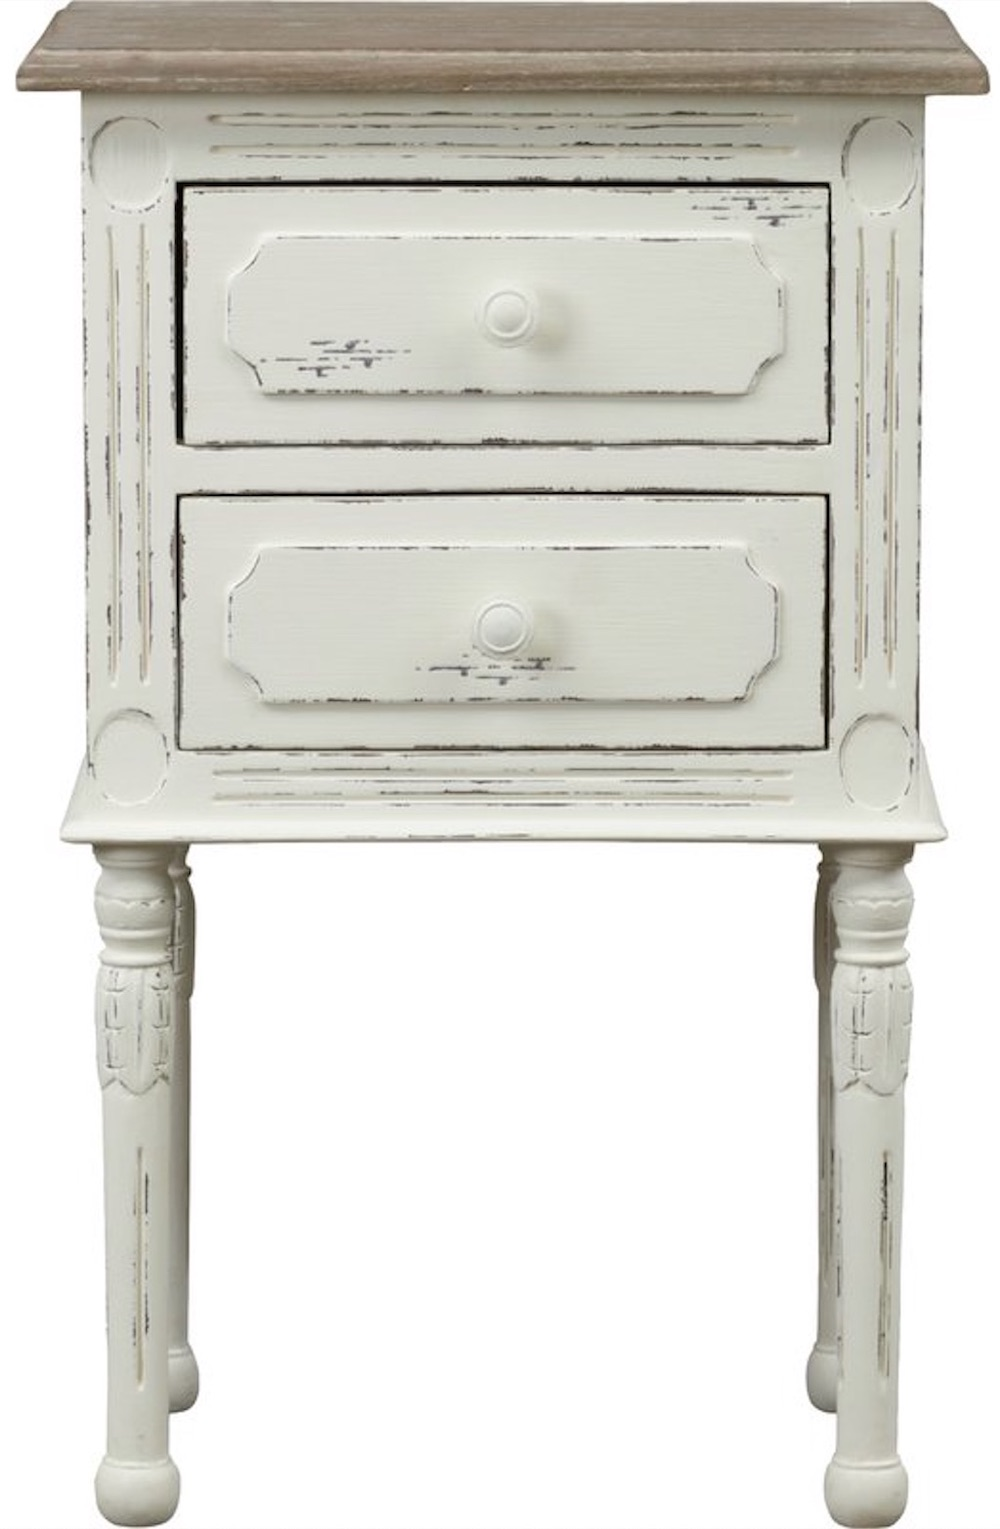 21 Farmhouse Nightstands For Nighttime Necessities Finding